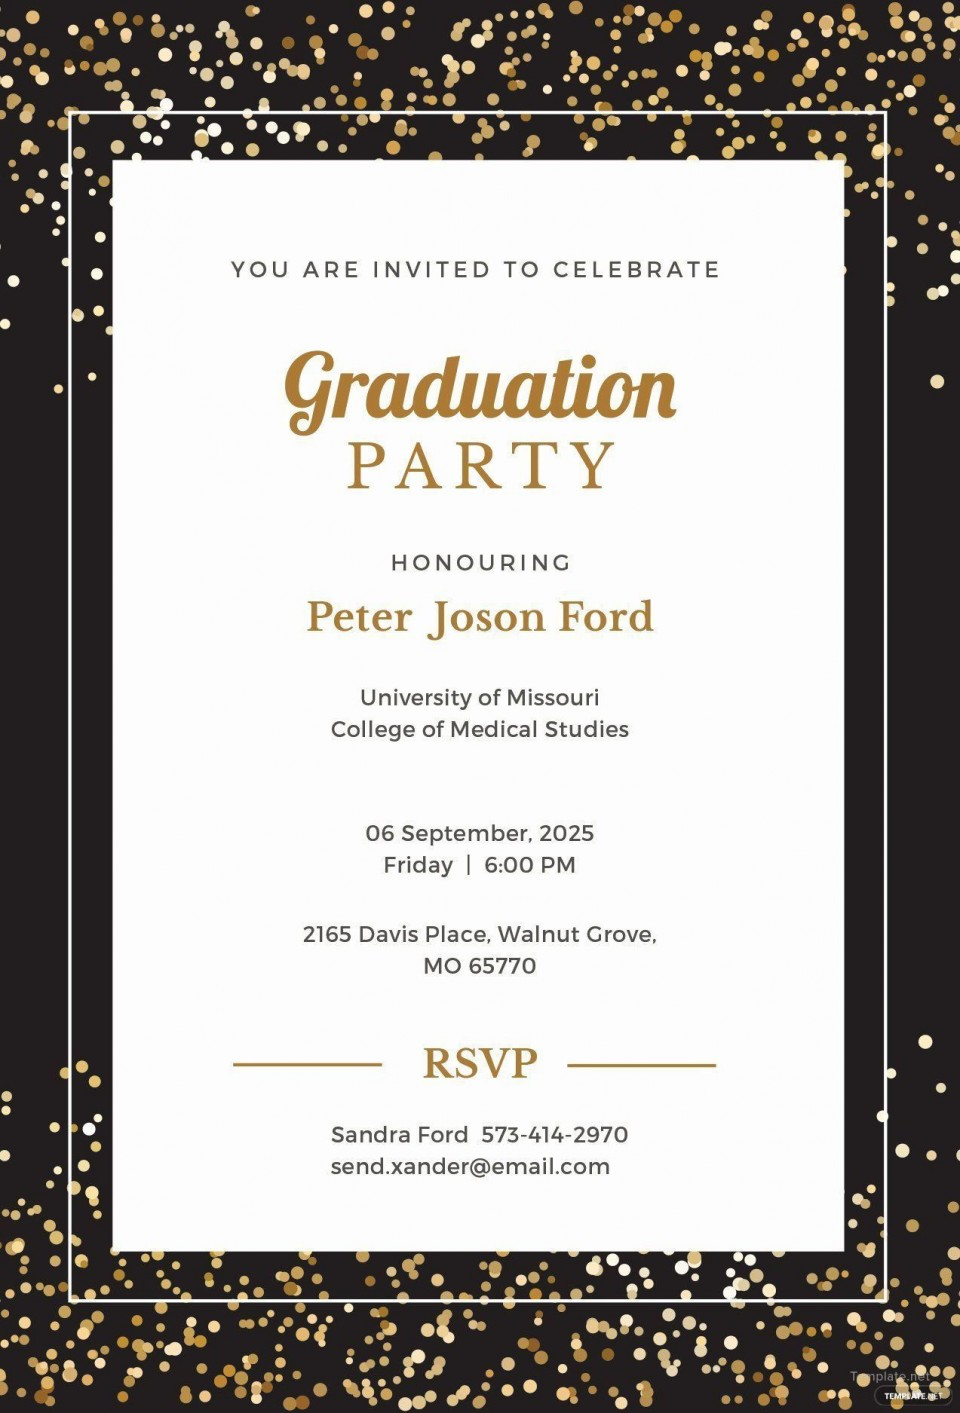 008 Dreaded Microsoft Word Graduation Party Invitation Template High Definition 960